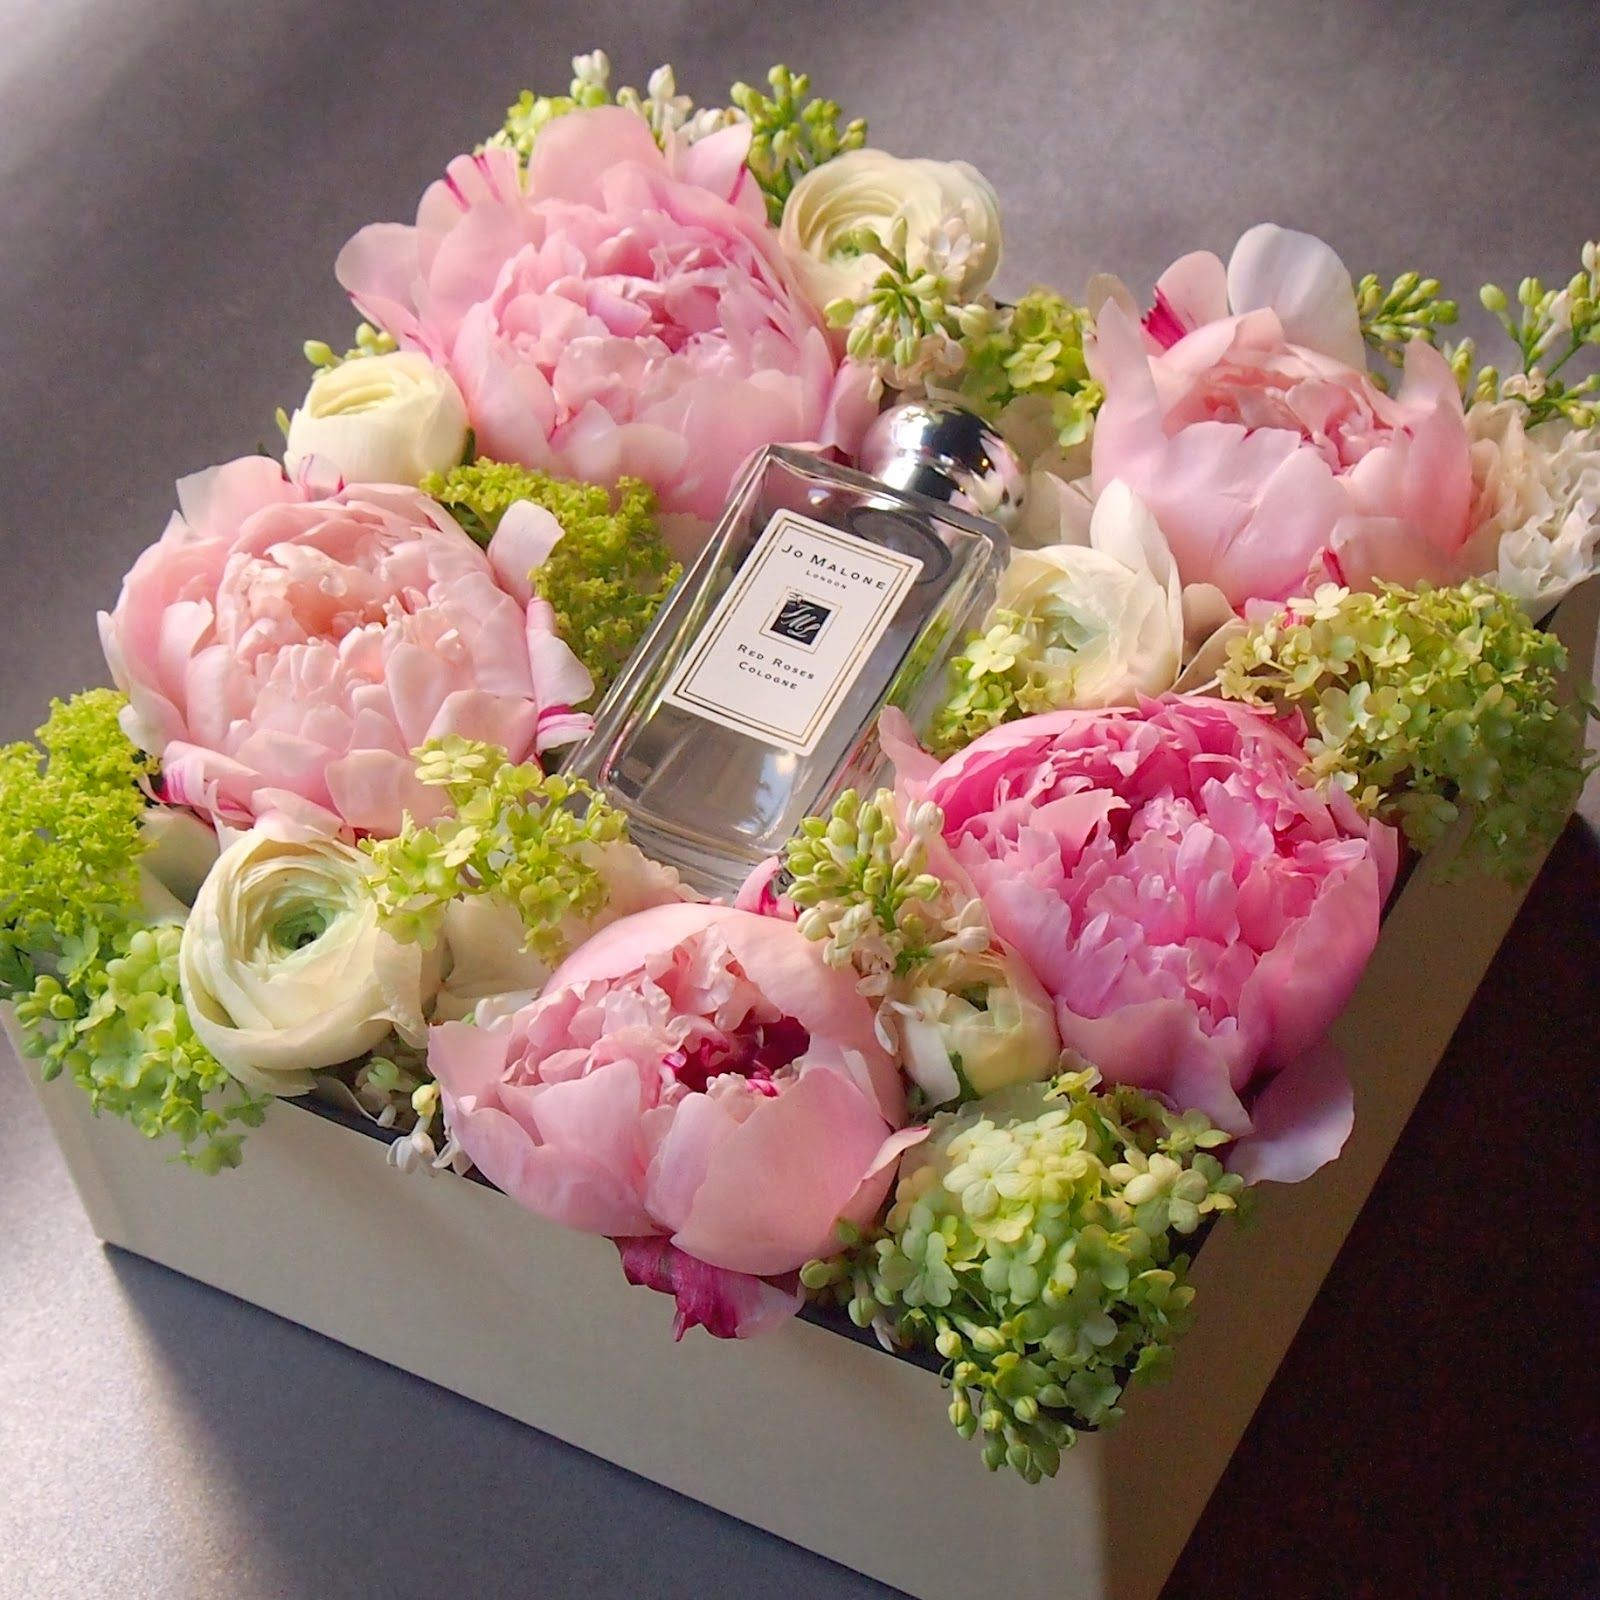 Flowers in a box peony jomalone gardening faves pinterest flowers in a box peony jomalone izmirmasajfo